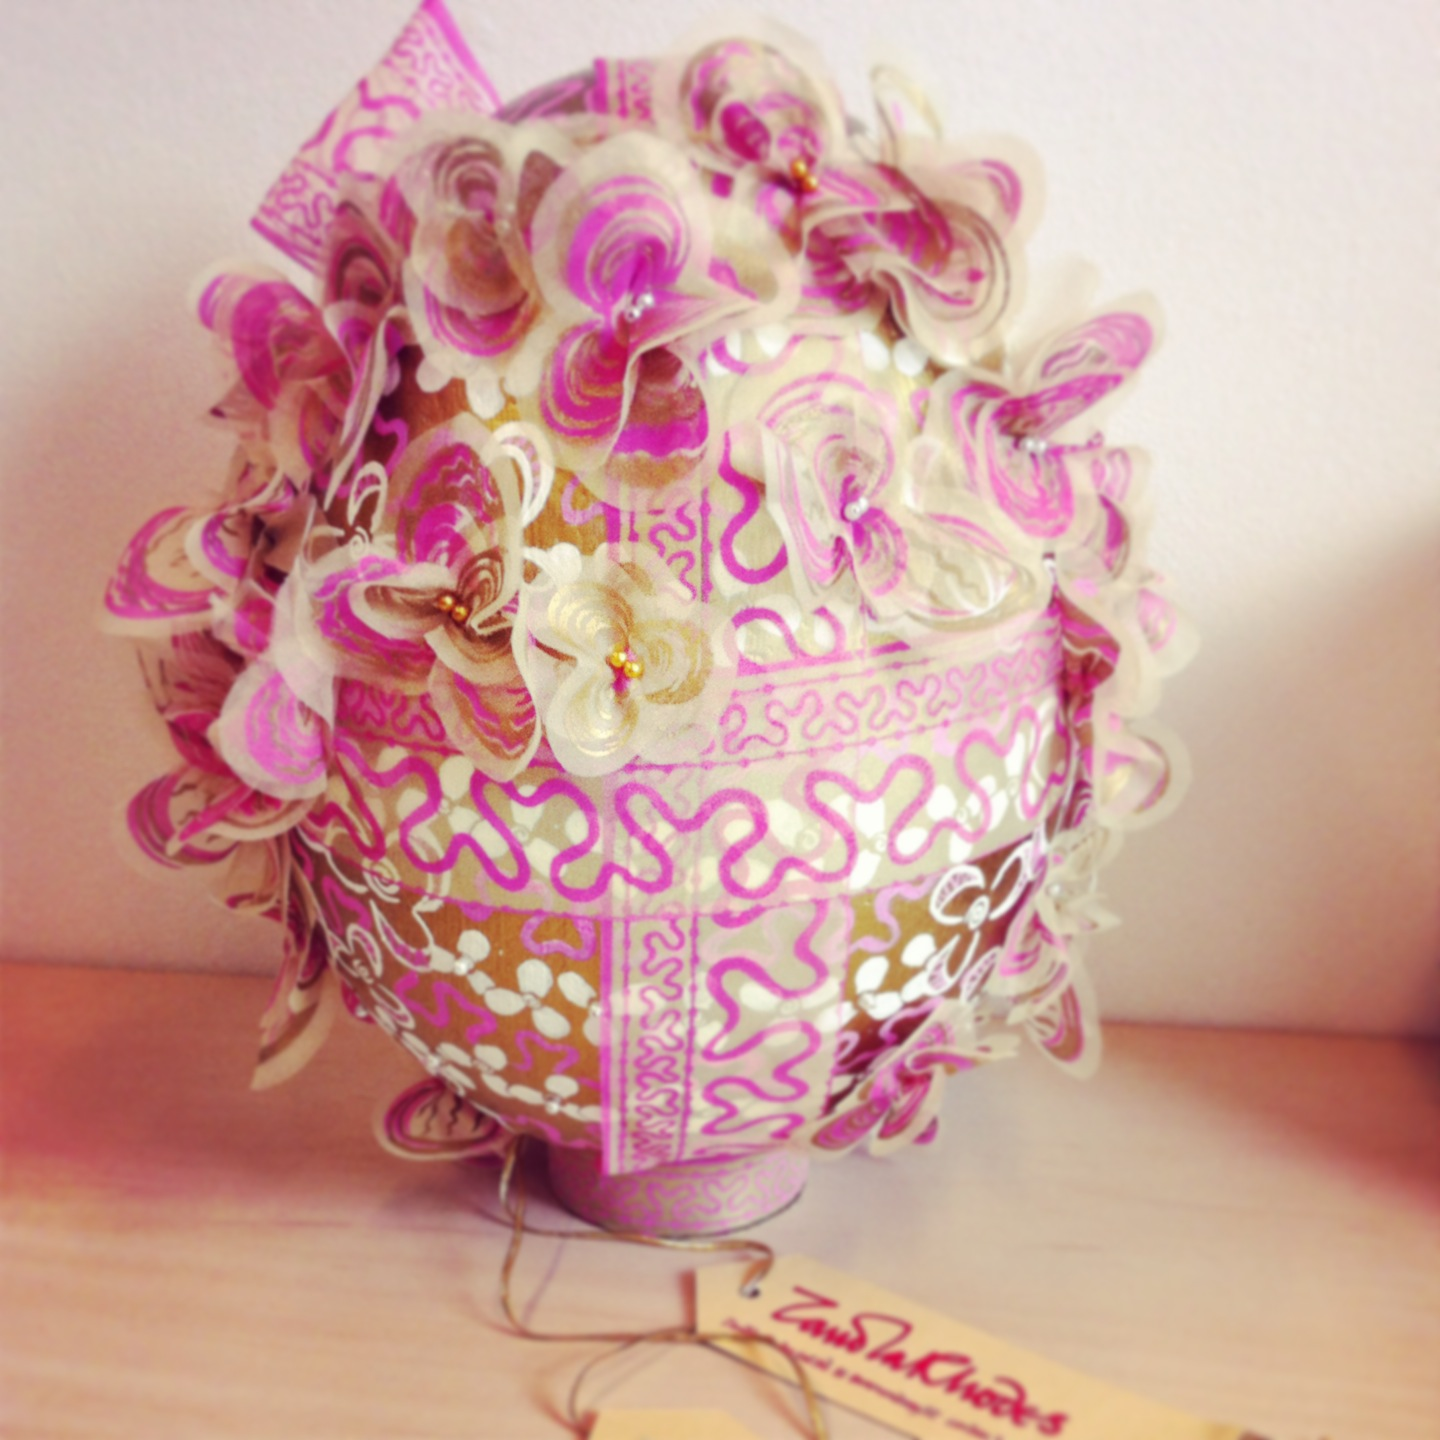 Easter egg by Zandra Rhodes